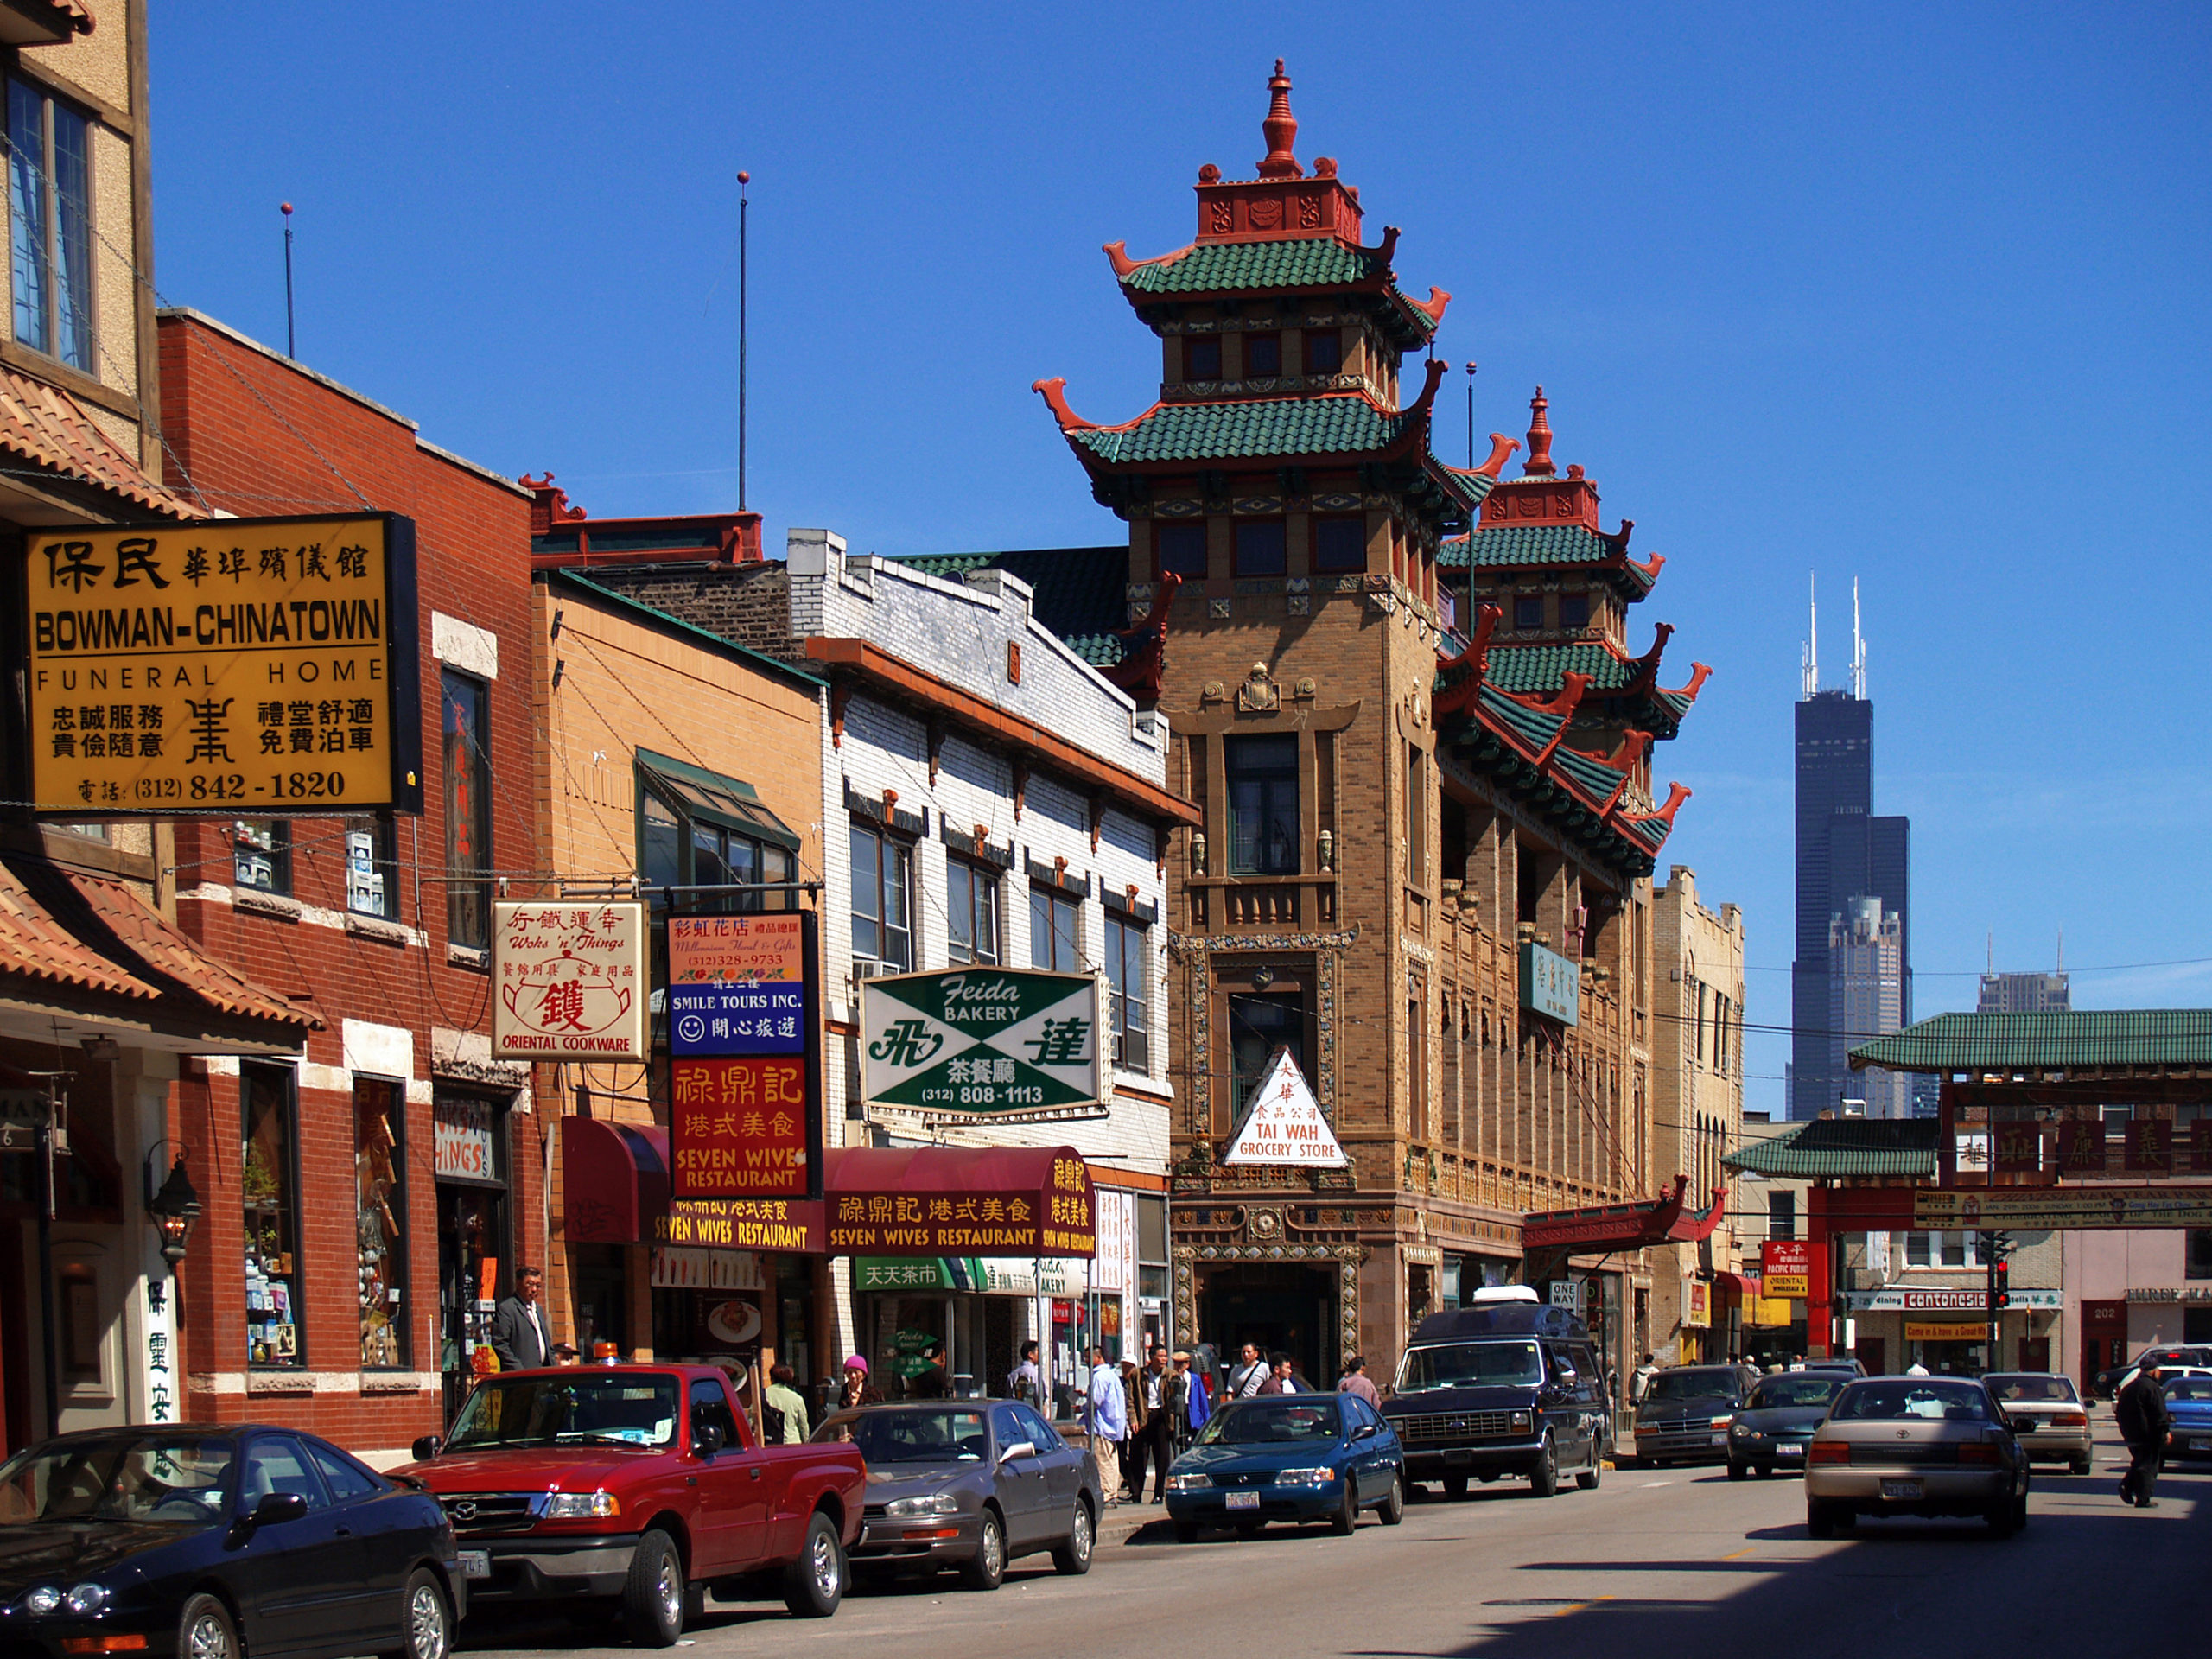 Chicago's Chinatown sits background of the image. A busy street is lined with cars and tall buildings with Chinese architecture sit above them.